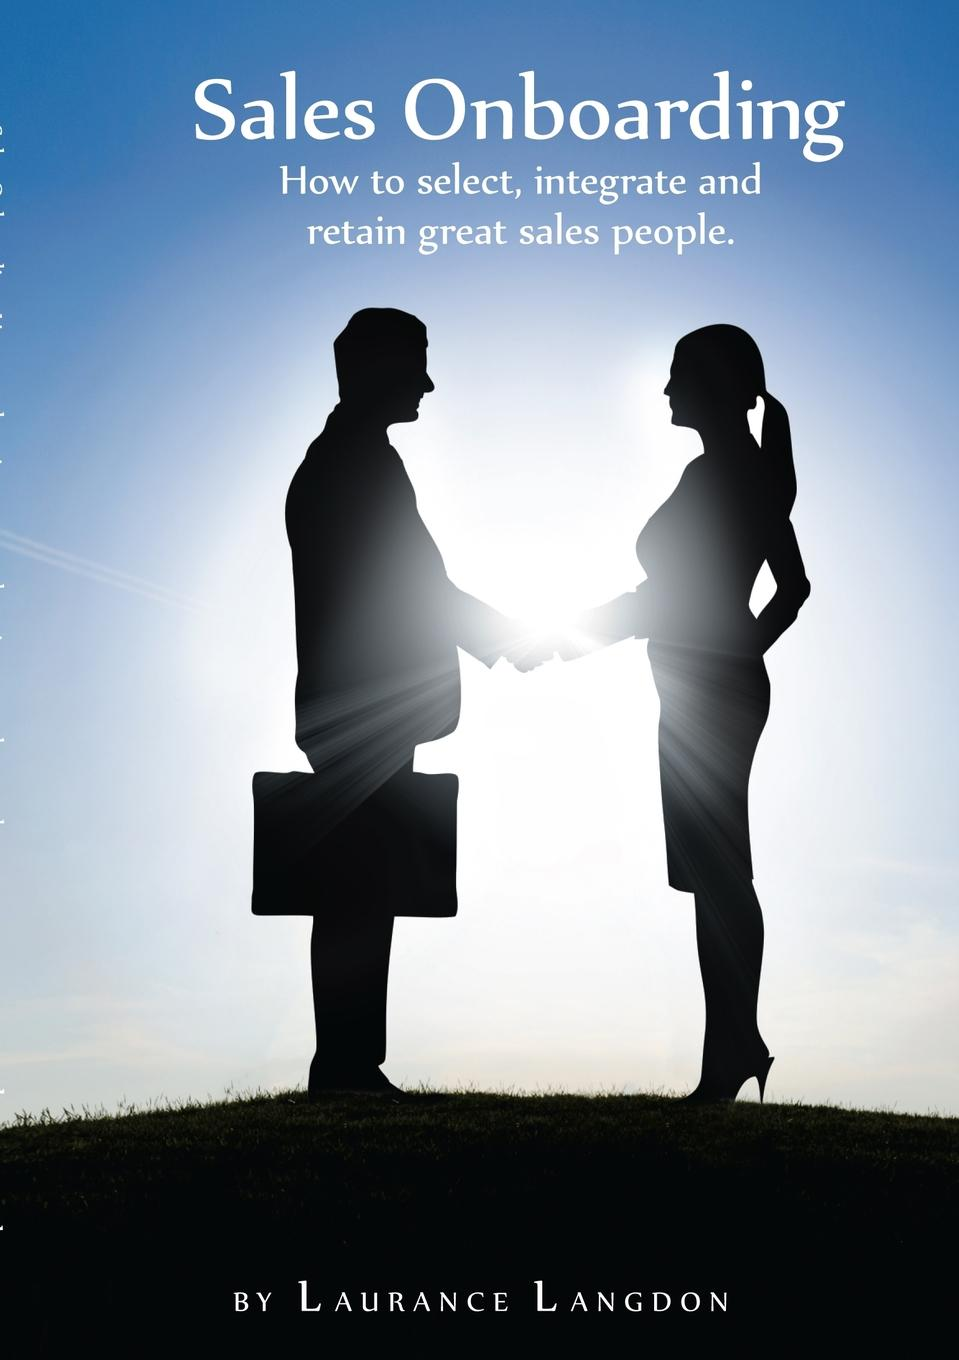 jonathan whistman the sales boss the real secret to hiring training and managing a sales team Laurance Langdon Sales Onboarding - How to select, integrate and retain great sales people